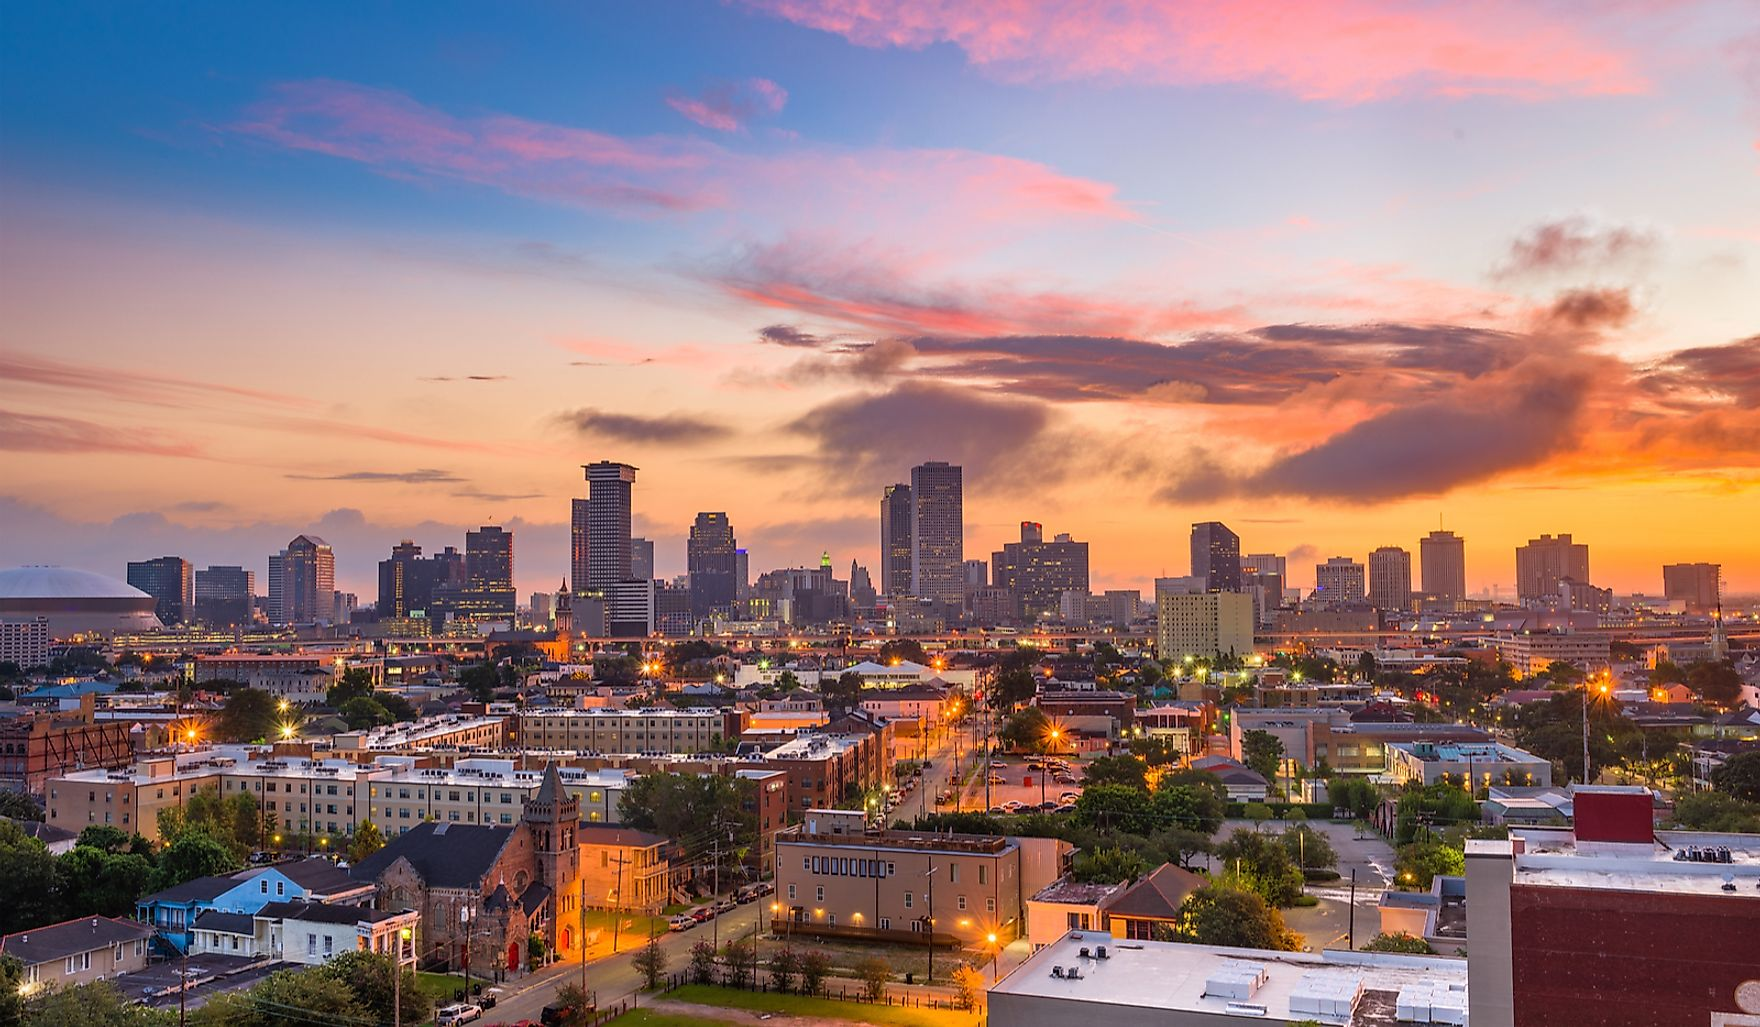 The skyline of New Orleans.